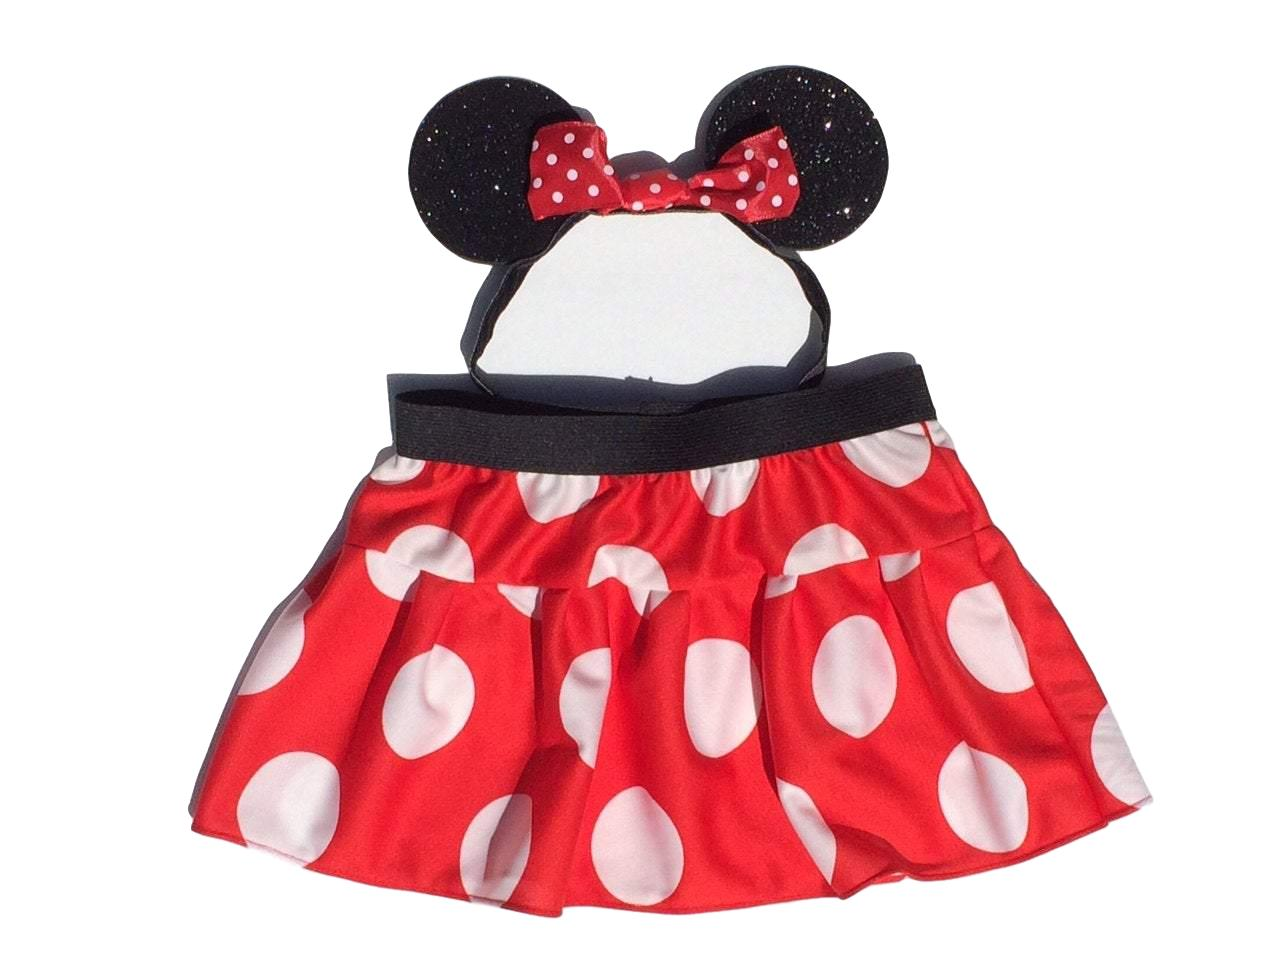 Mrs Mouse Skirt and Ears Costume - Rock City Skirts